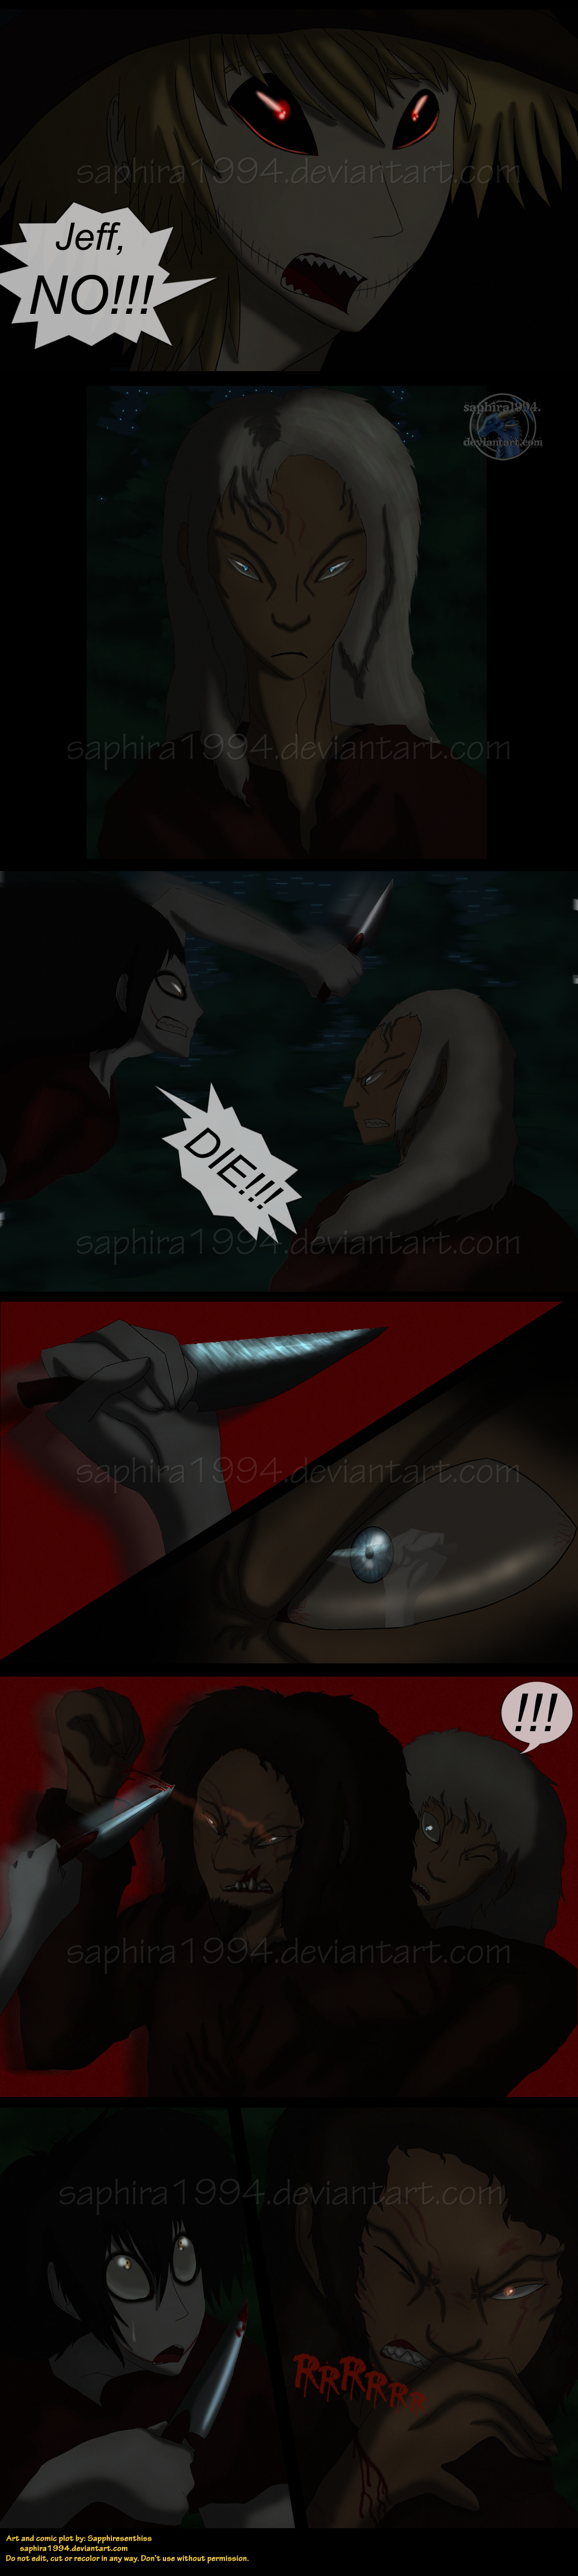 Adventures With Jeff The Killer - PAGE 140 by ...